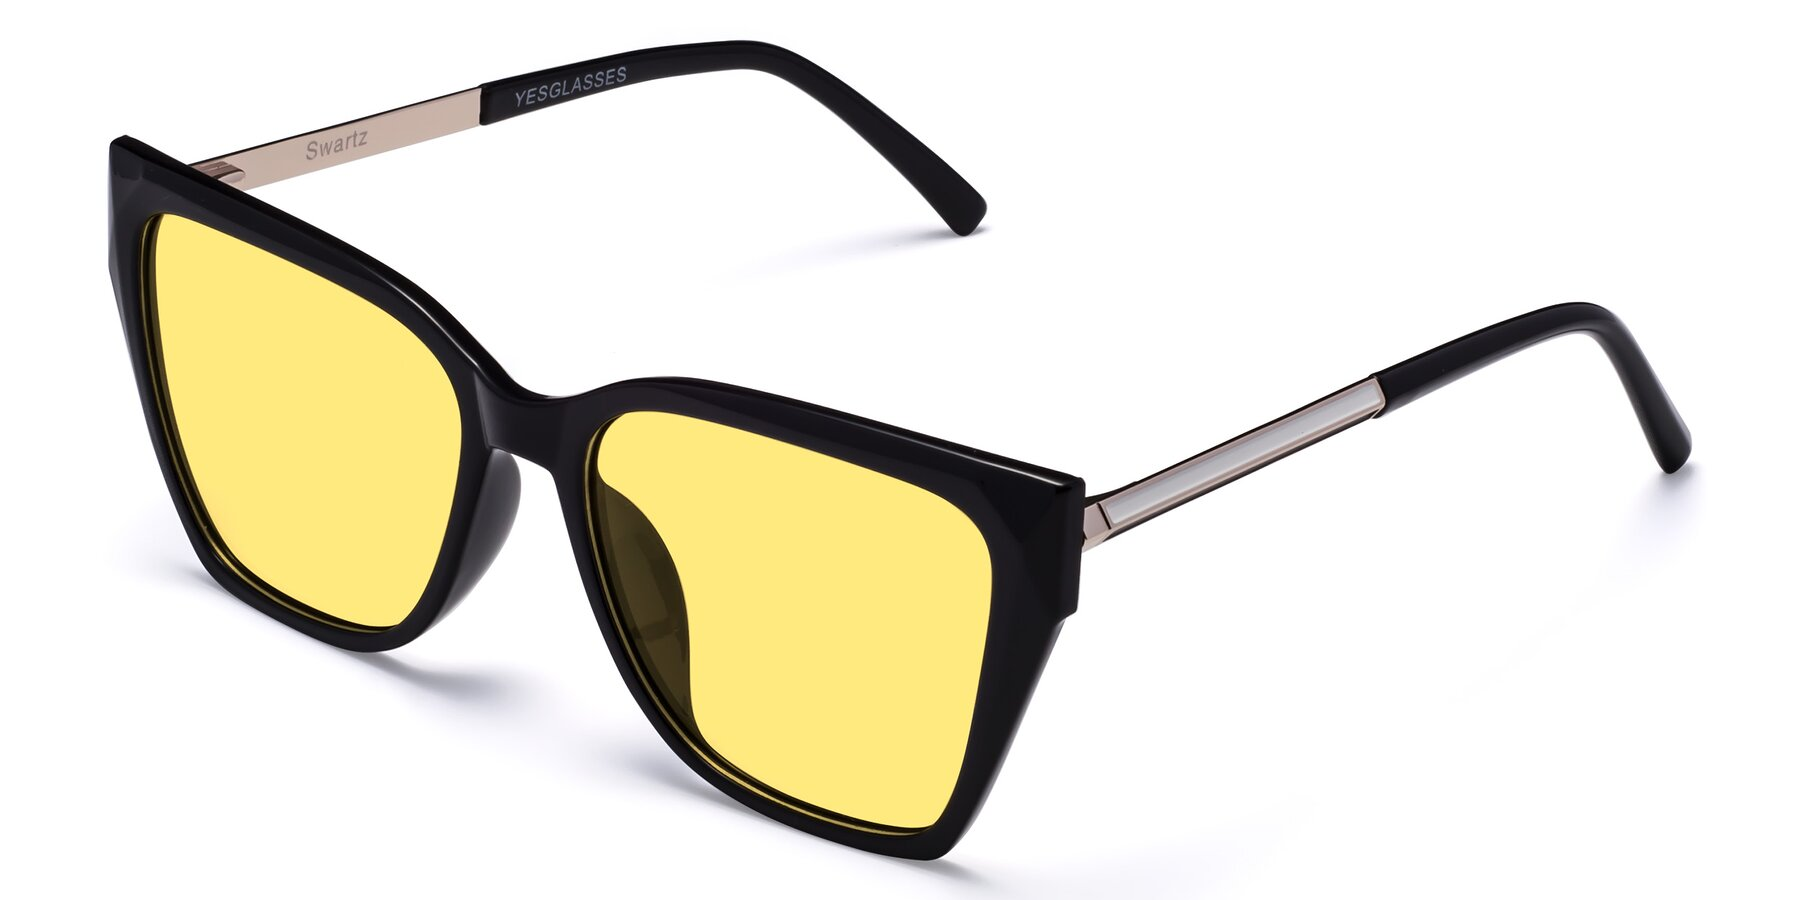 Angle of Swartz in Black with Medium Yellow Tinted Lenses